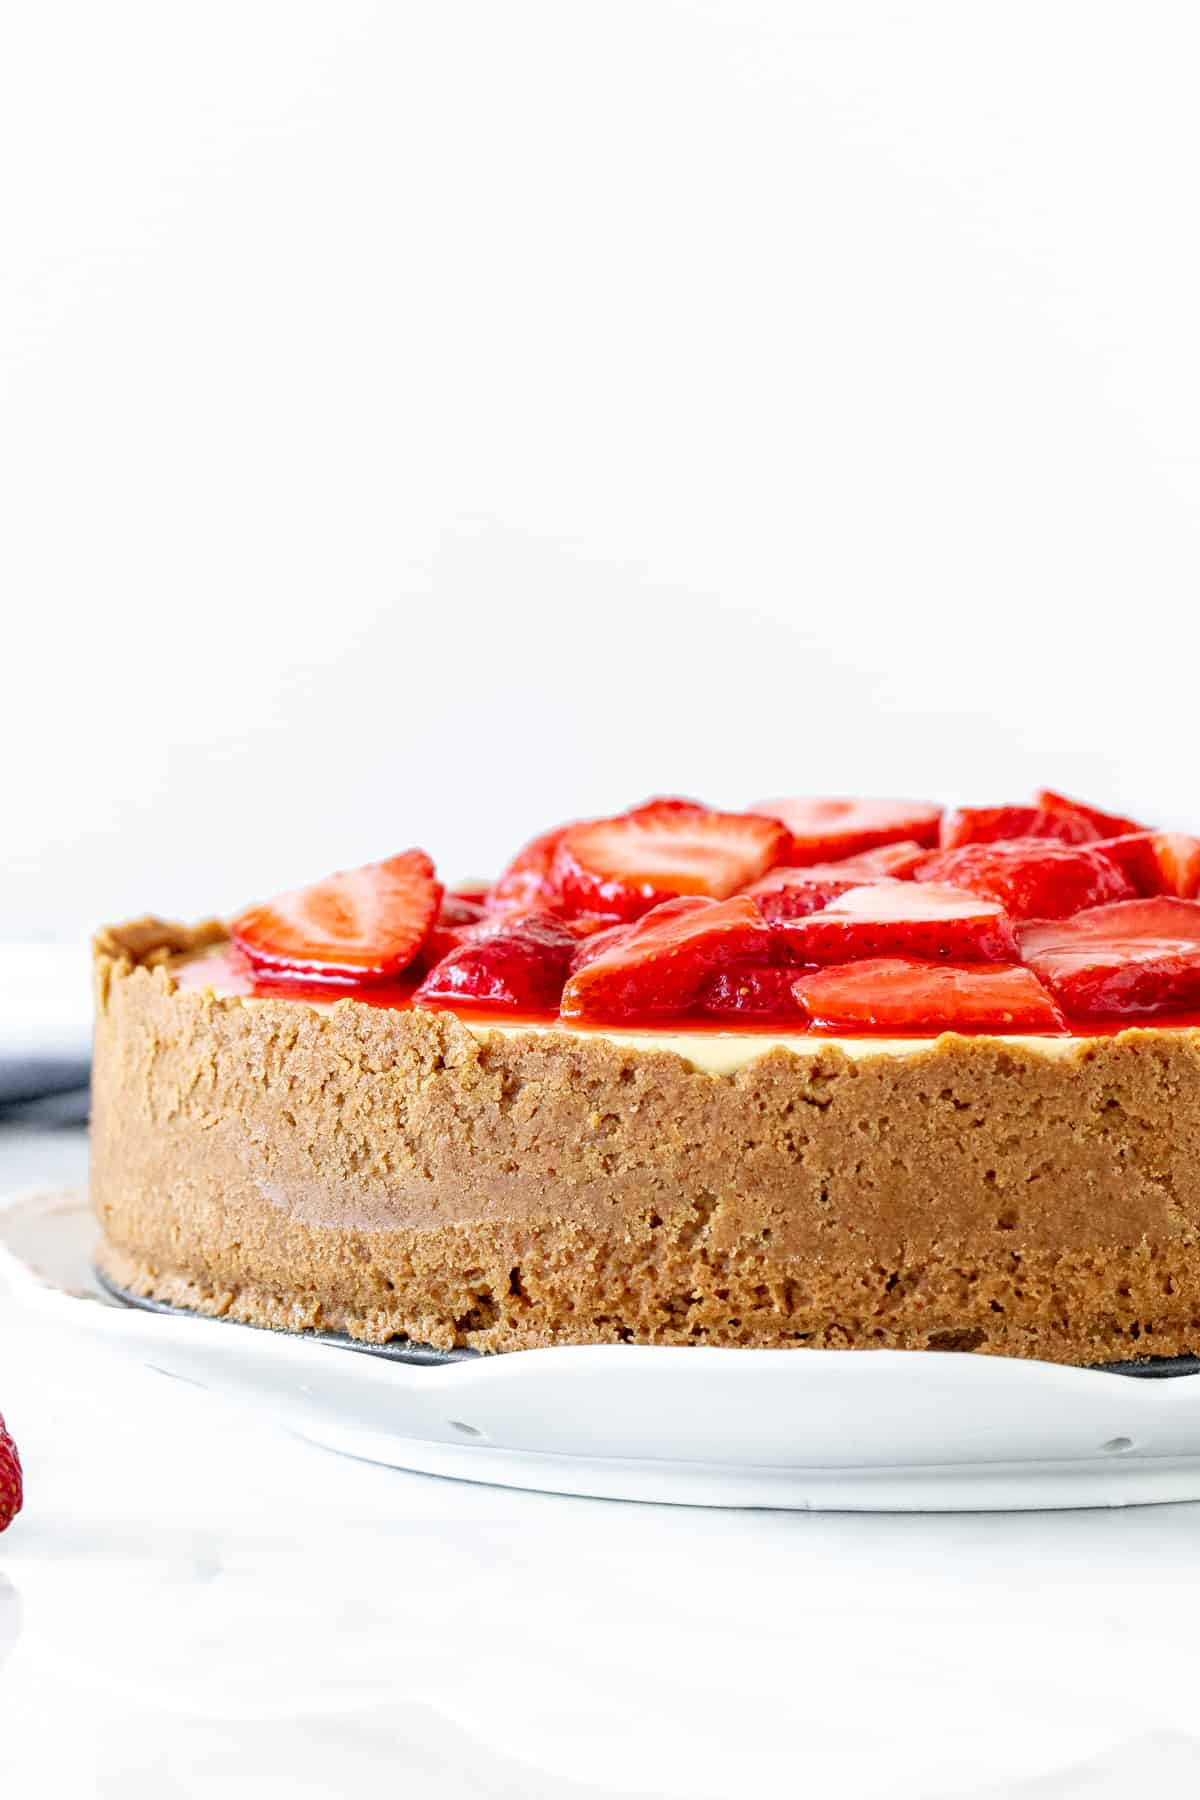 Cheesecake with strawberry topping and a graham crumb crust around the sides.